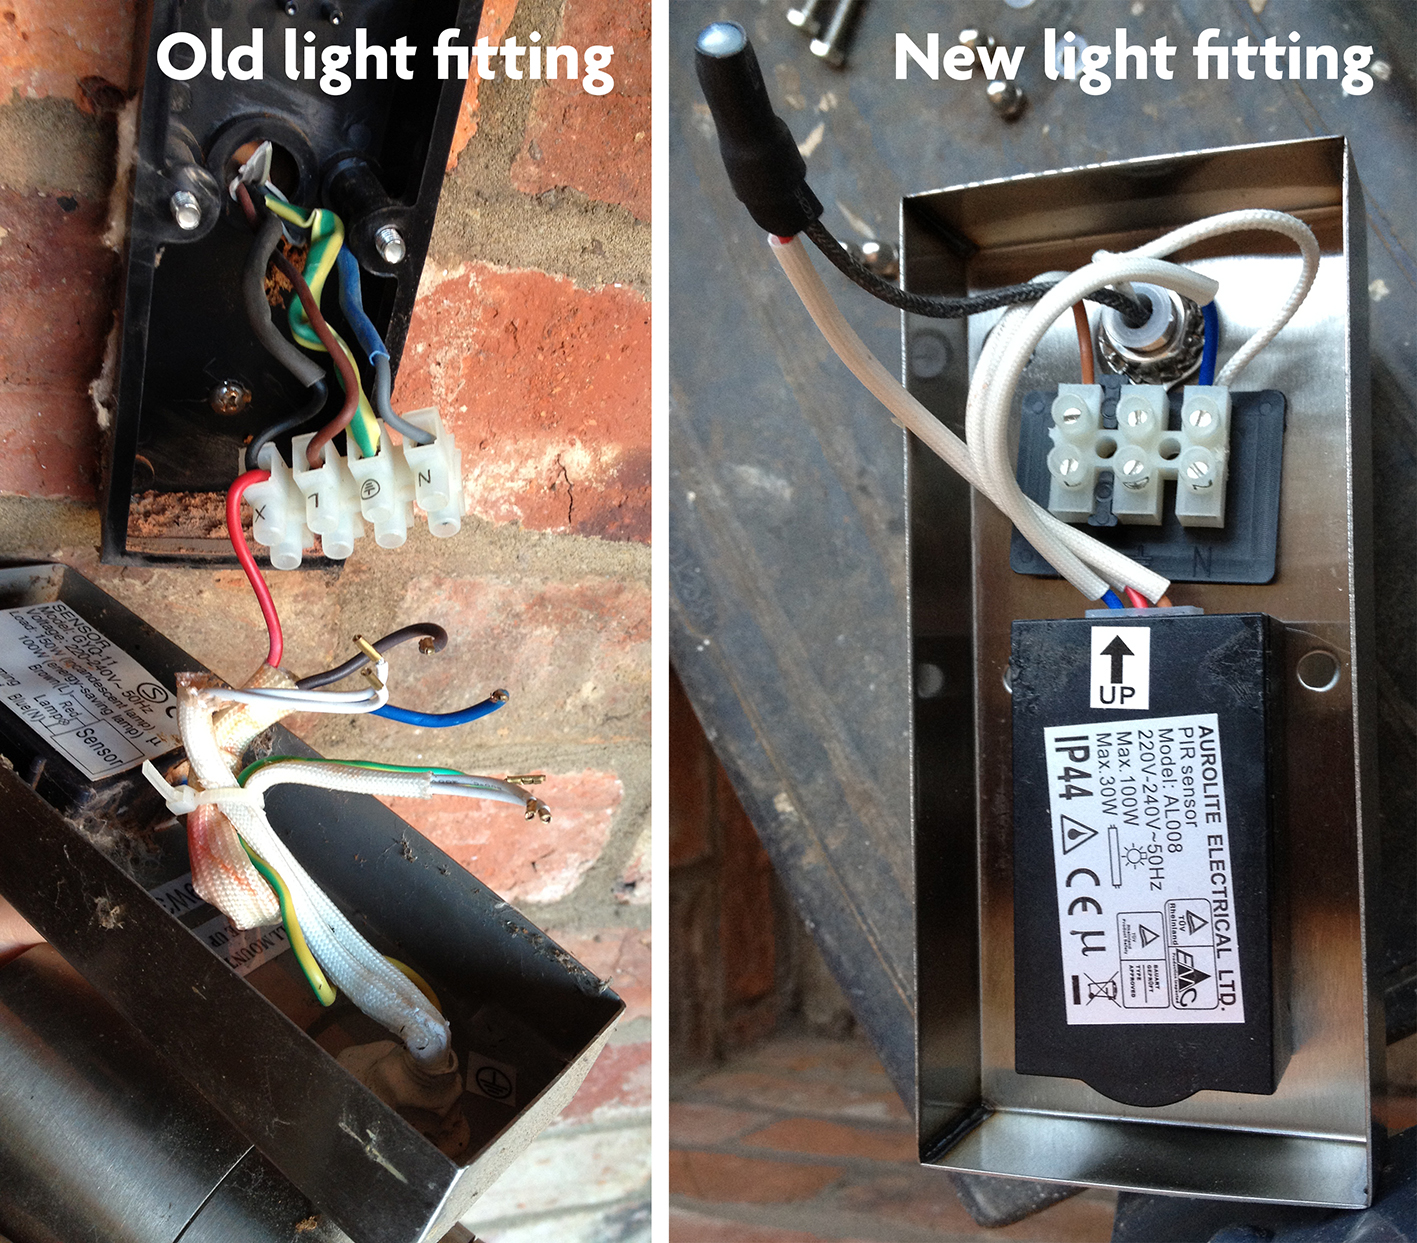 Wiring For Replacement Outside Light Diynot Forums Outdoor Sensor However There Are Only 3 Terminals On The Block In New Fitting Compared To 4 Old One L N Earth And X Please See Image Of